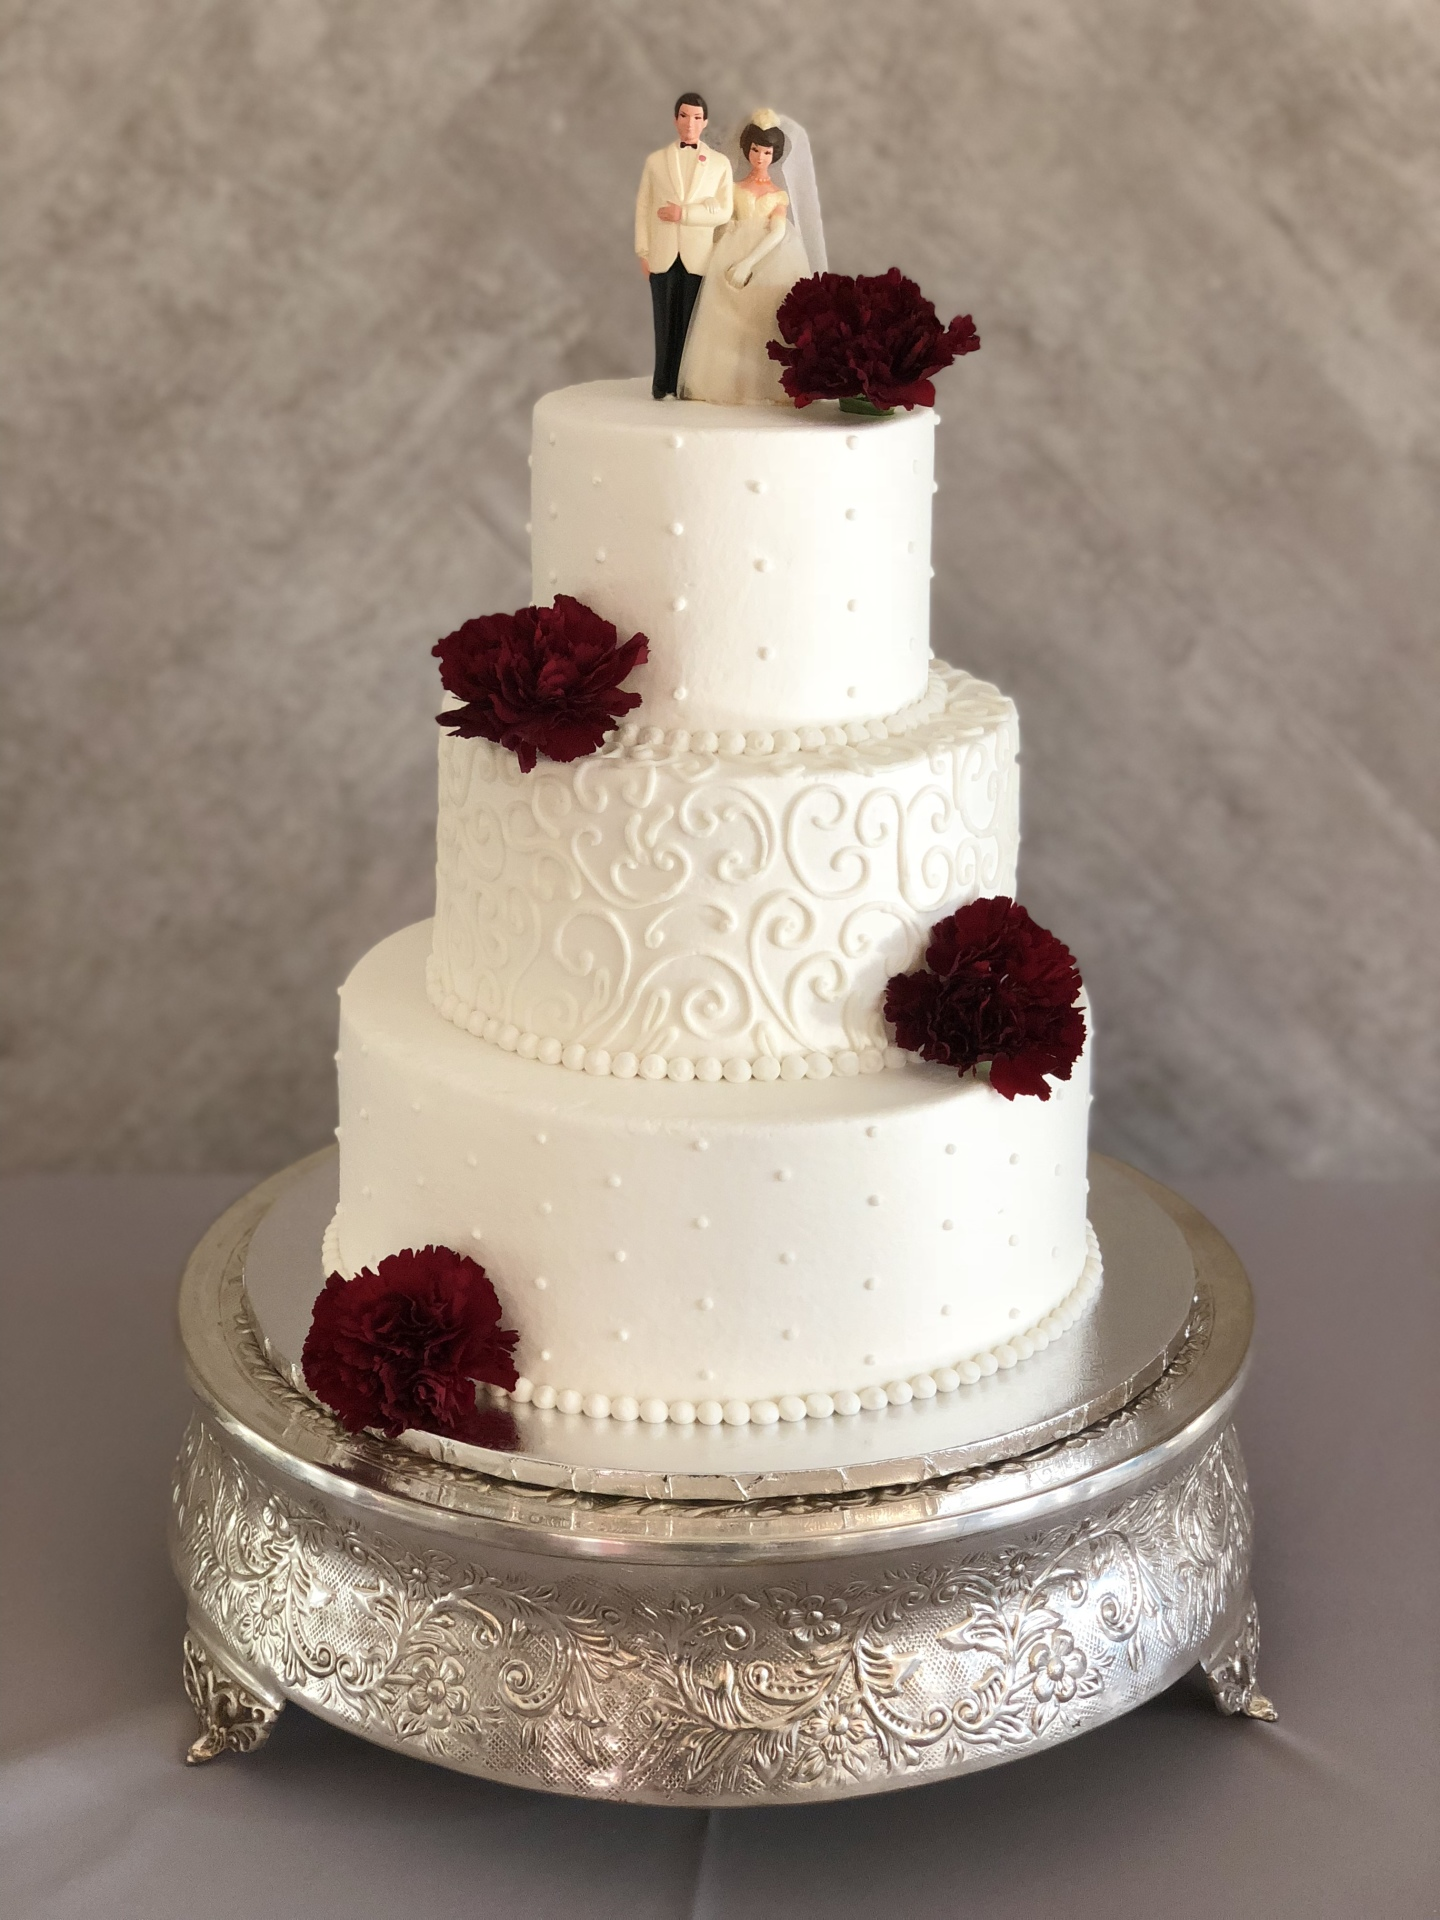 Simple buttercream with burgundy carnations